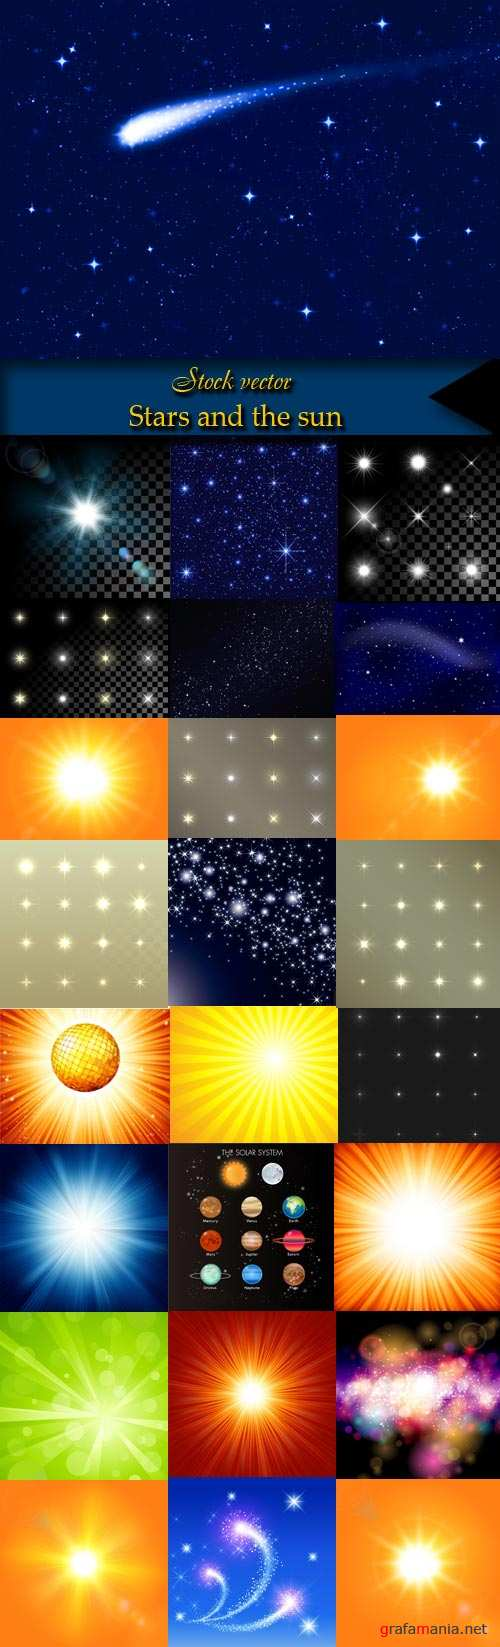 Stars and the sun